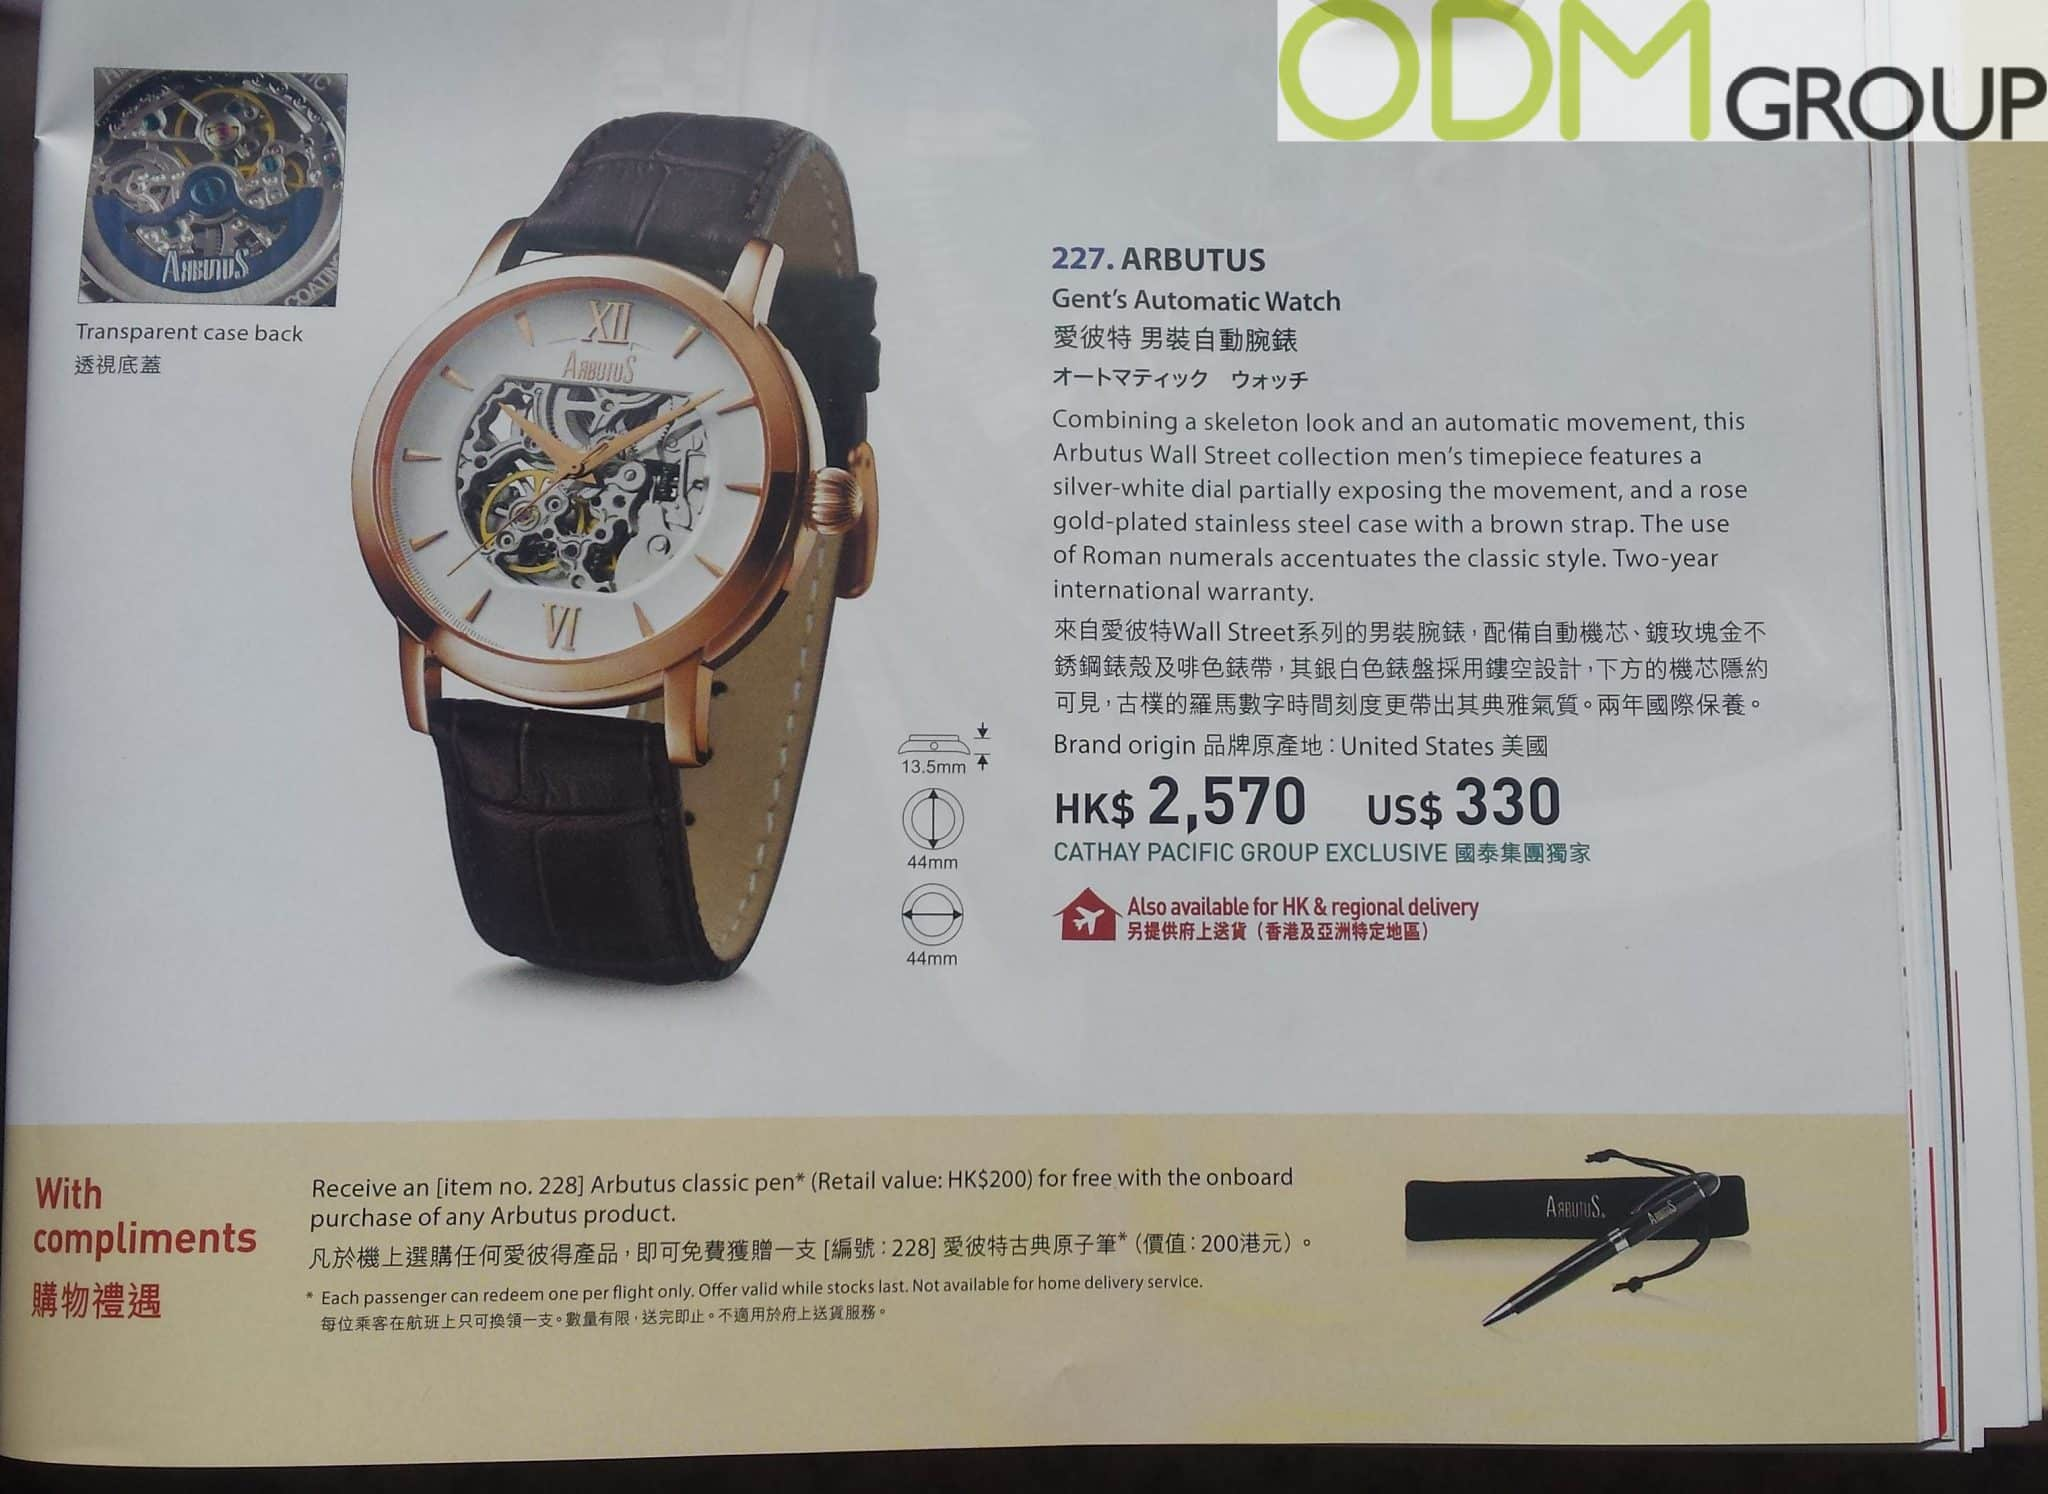 Magazine Promo – Cathay Pacific Arbutus Watch Promotion